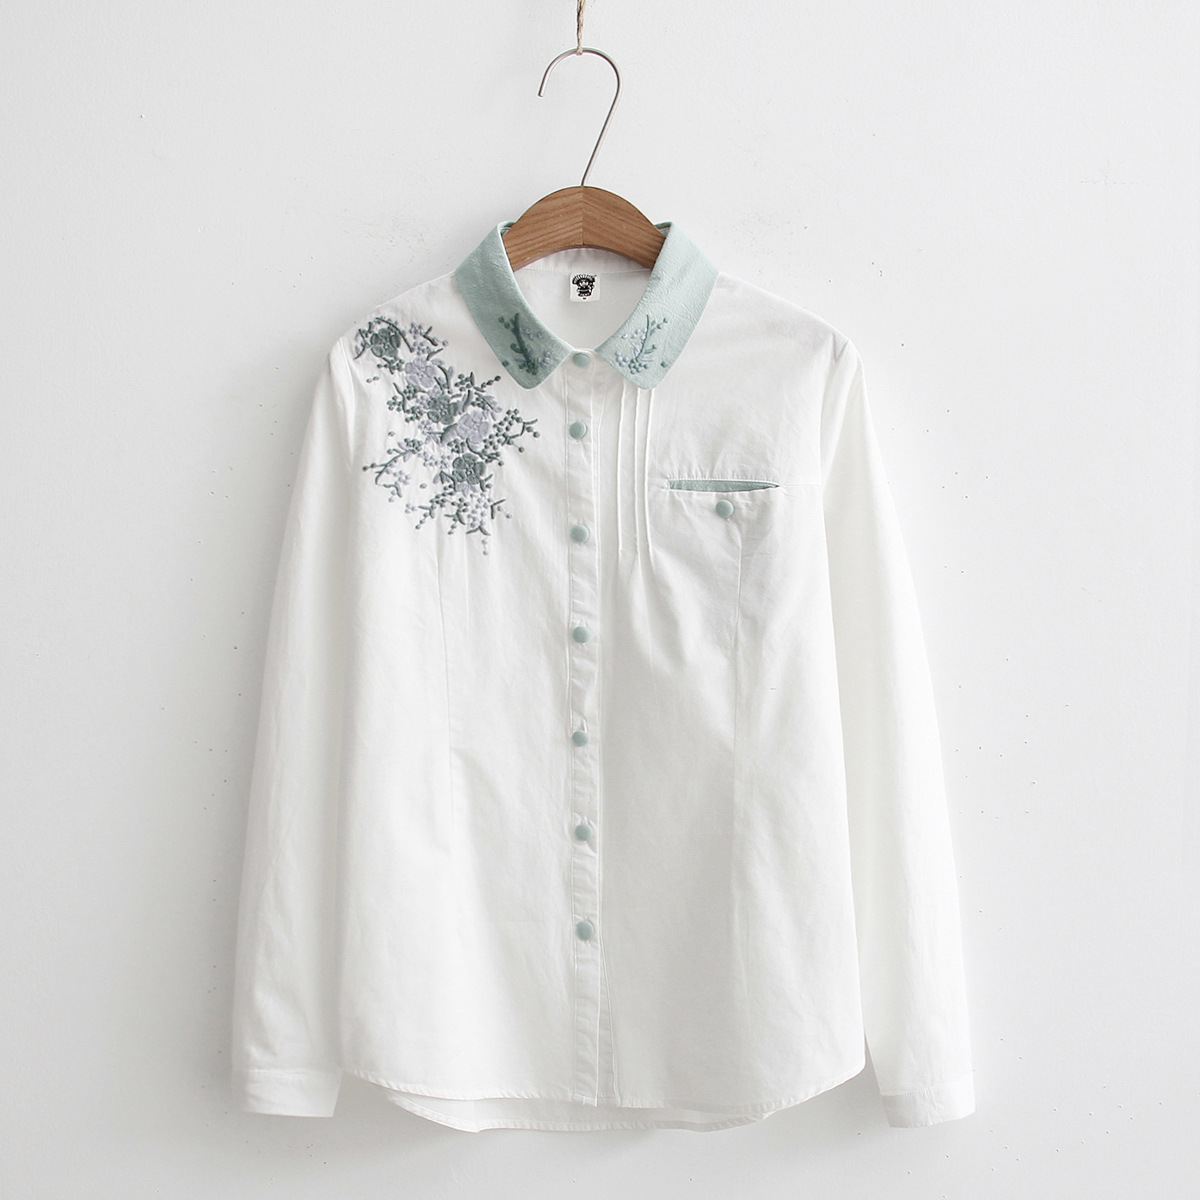 Women   Blouses   Floral Embroidery White Female Casual Ladies Tops Long Sleeve   Shirts   Cotton Clothes Autumn Blusas Work Office Wear